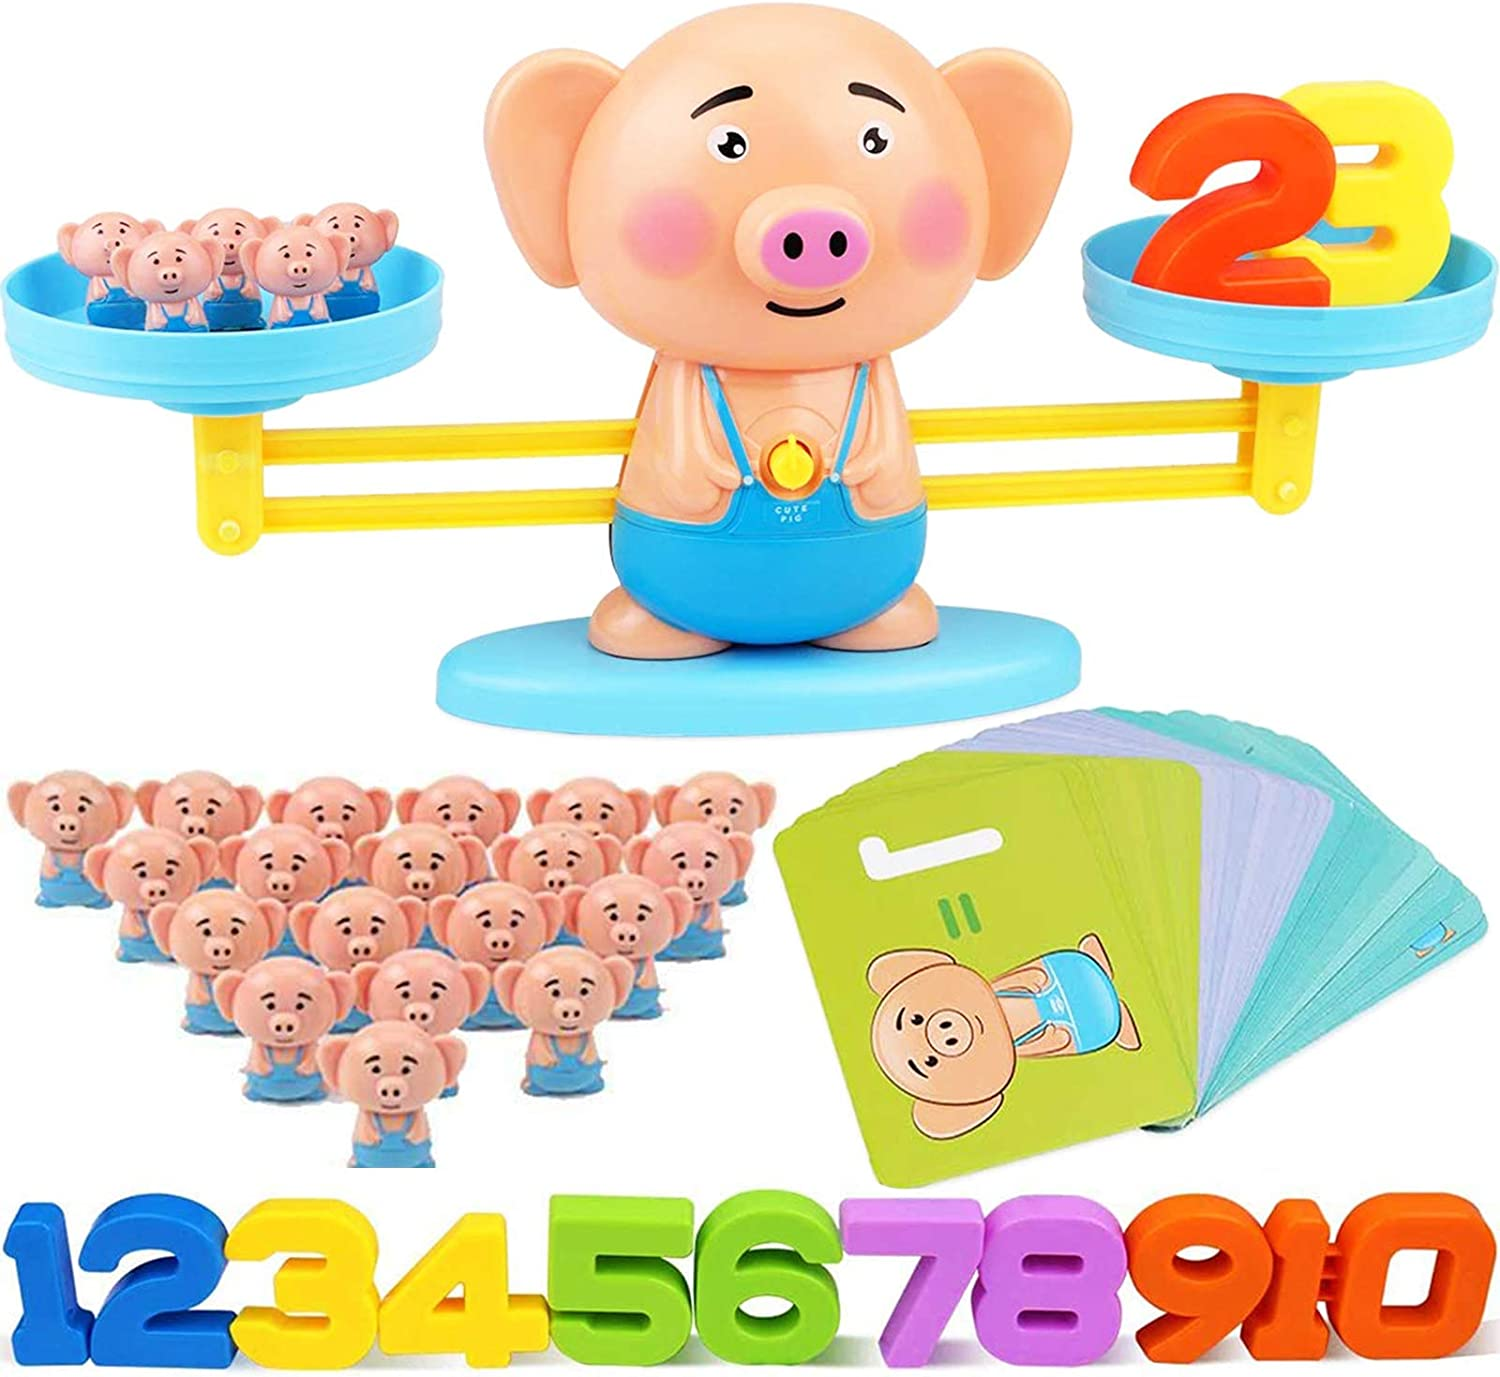 CozyBomB Educational Toys STEM Learning Activities Games - Math Manipulatives Counting Bears Toddler Homeschool Supplies Preschool Kindergarten Steam Toy for Kids ages 3 4 5 6 7 8 years old Boys Girls